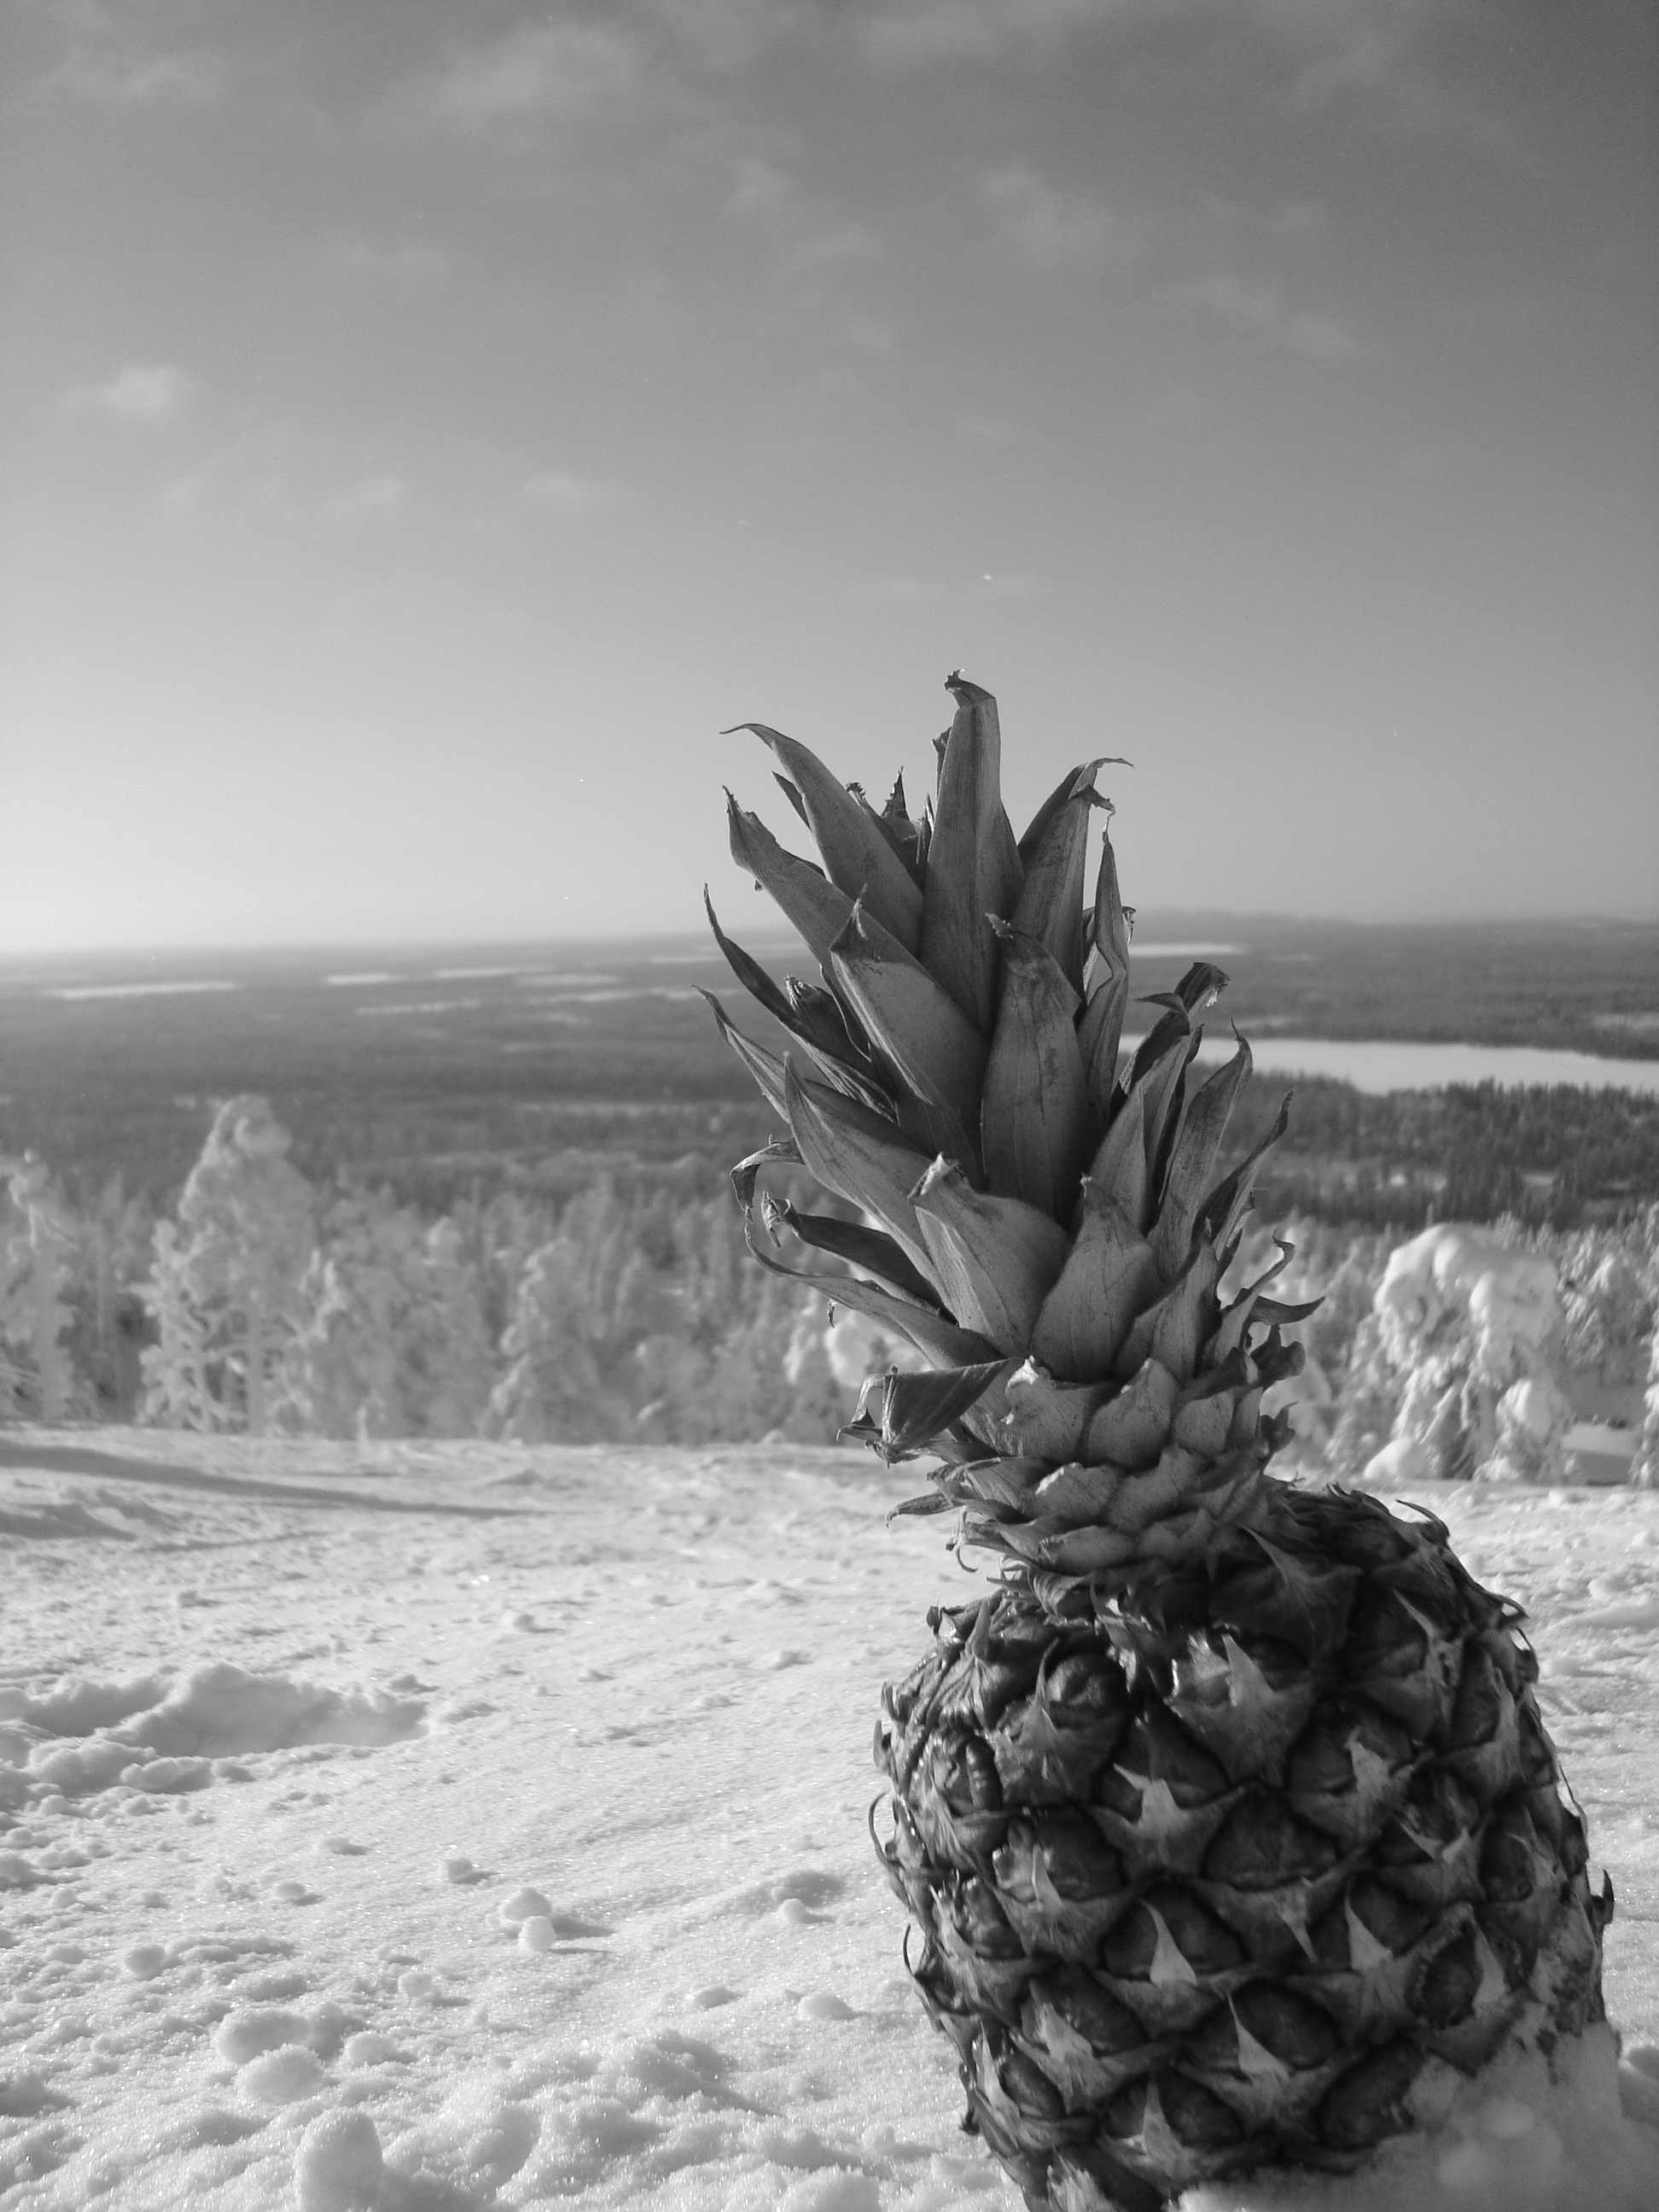 Took a pineapple skiing in northern Finland.